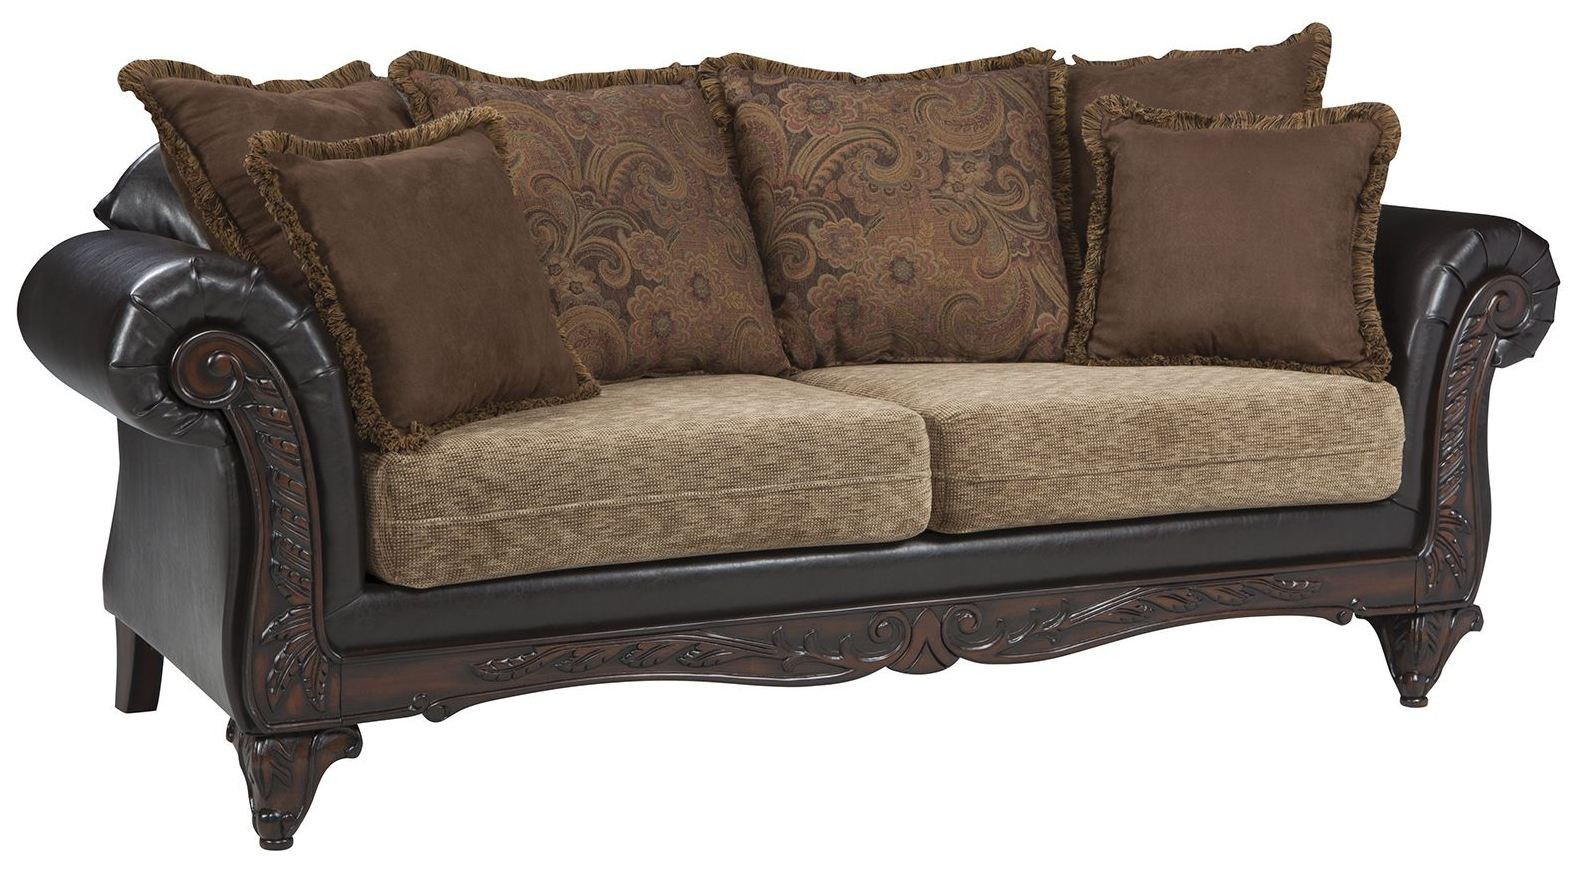 garroway russet chocolate sofa from coaster coleman furniture. Black Bedroom Furniture Sets. Home Design Ideas